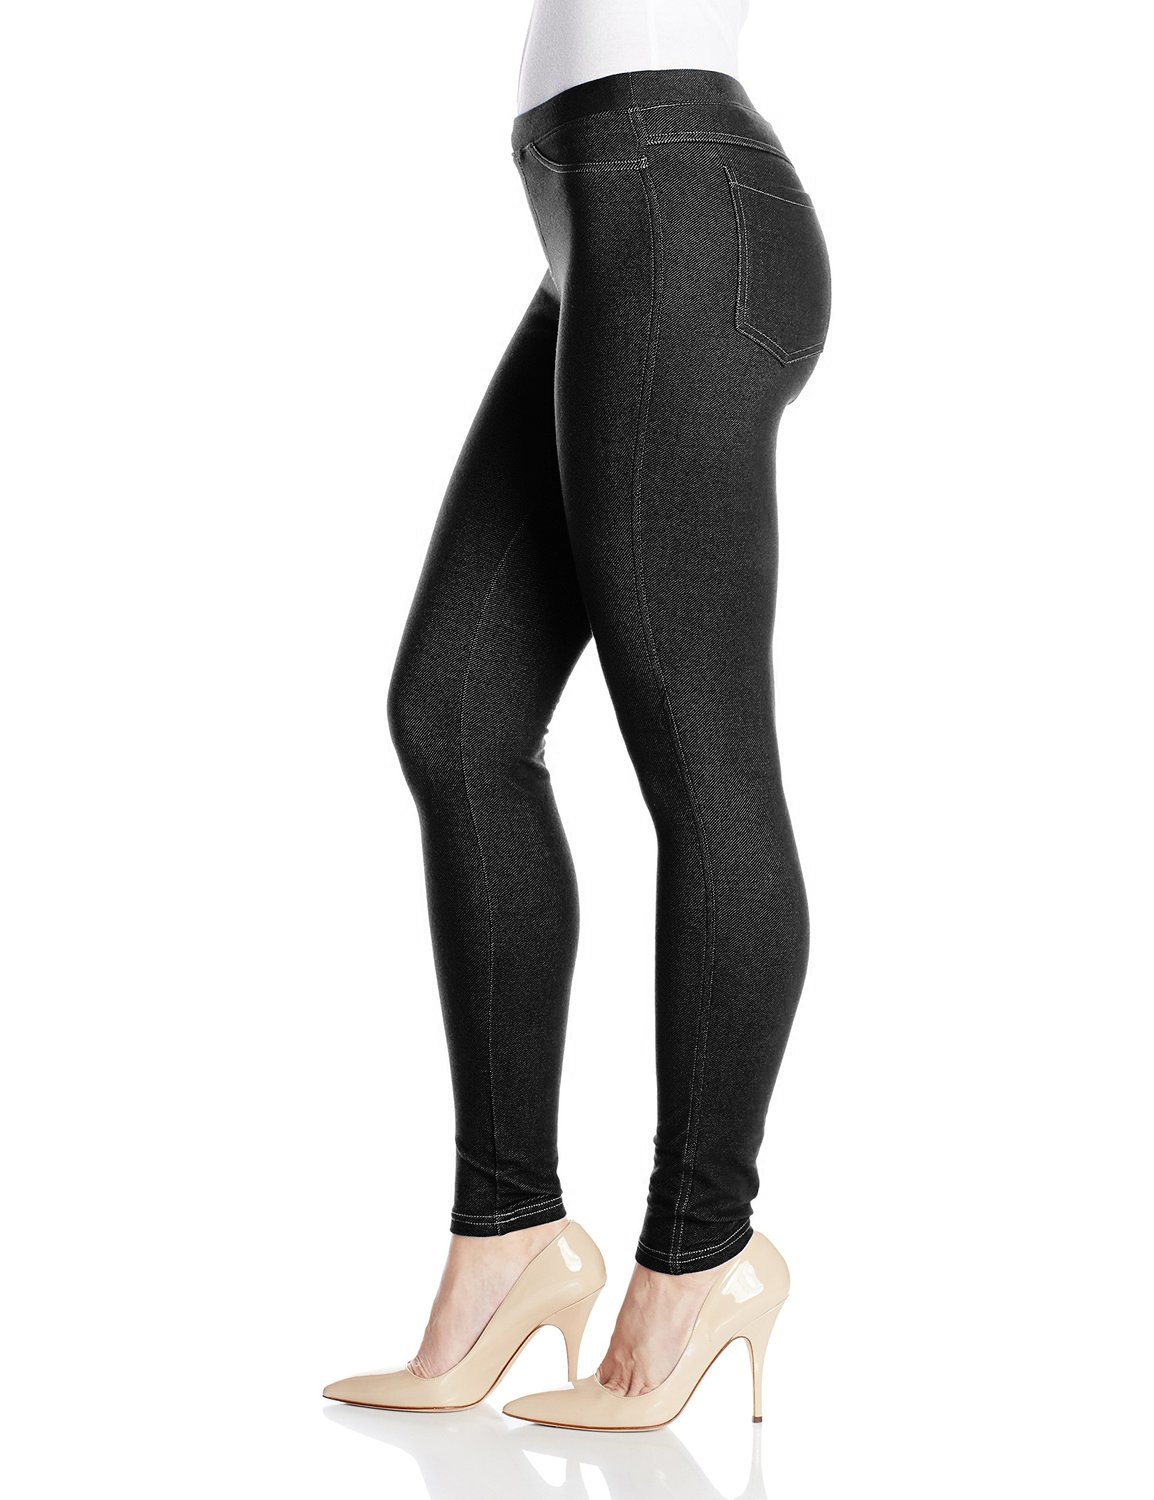 Shop for stretch denim leggings online at Target. Free shipping on purchases over $35 and save 5% every day with your Target REDcard.